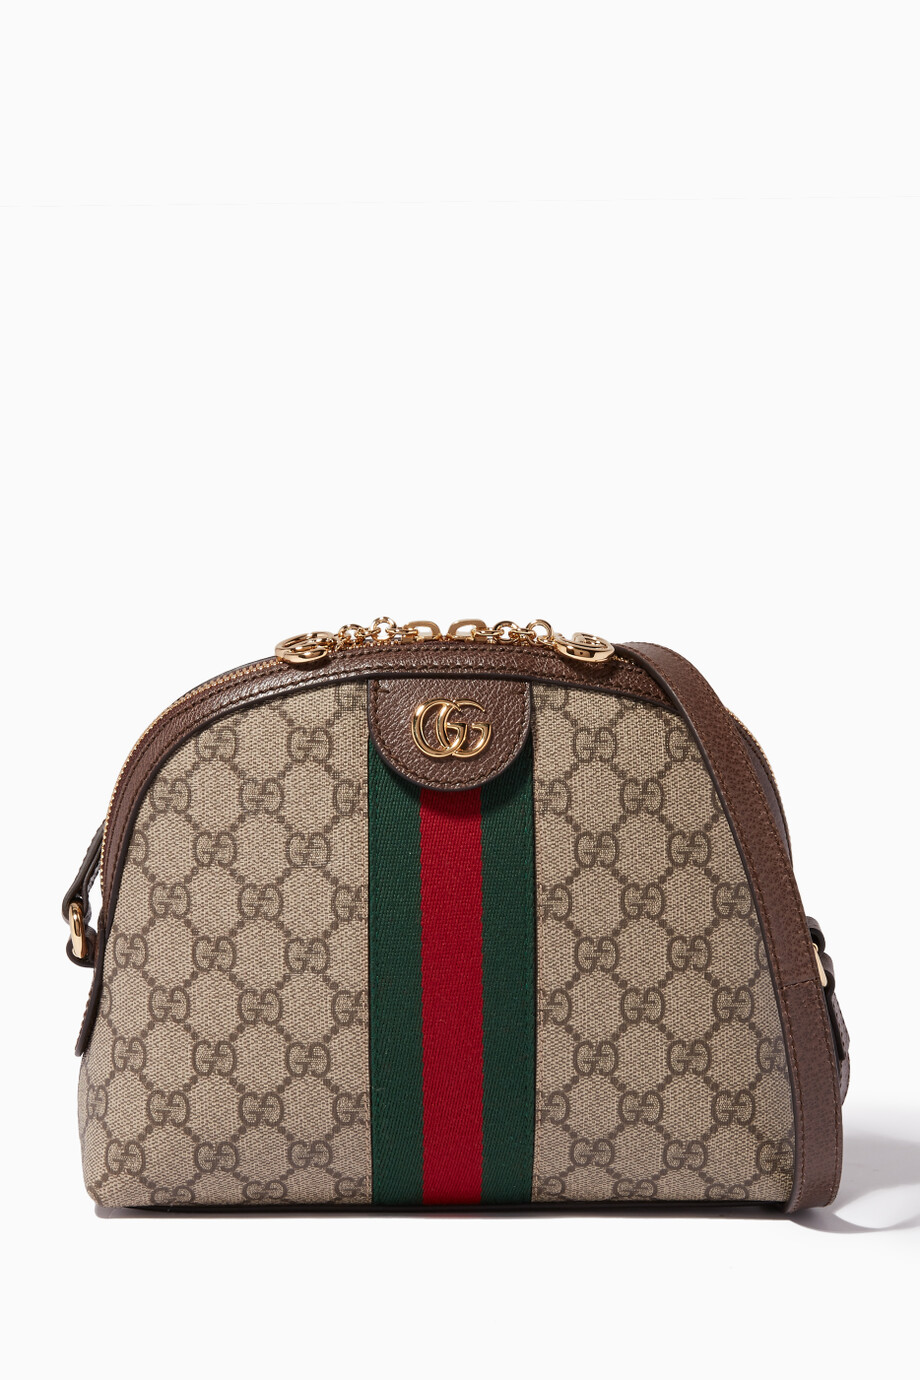 6351b5ffbfb83 Shop Gucci Brown Brown Ophidia GG Shoulder Bag for Women